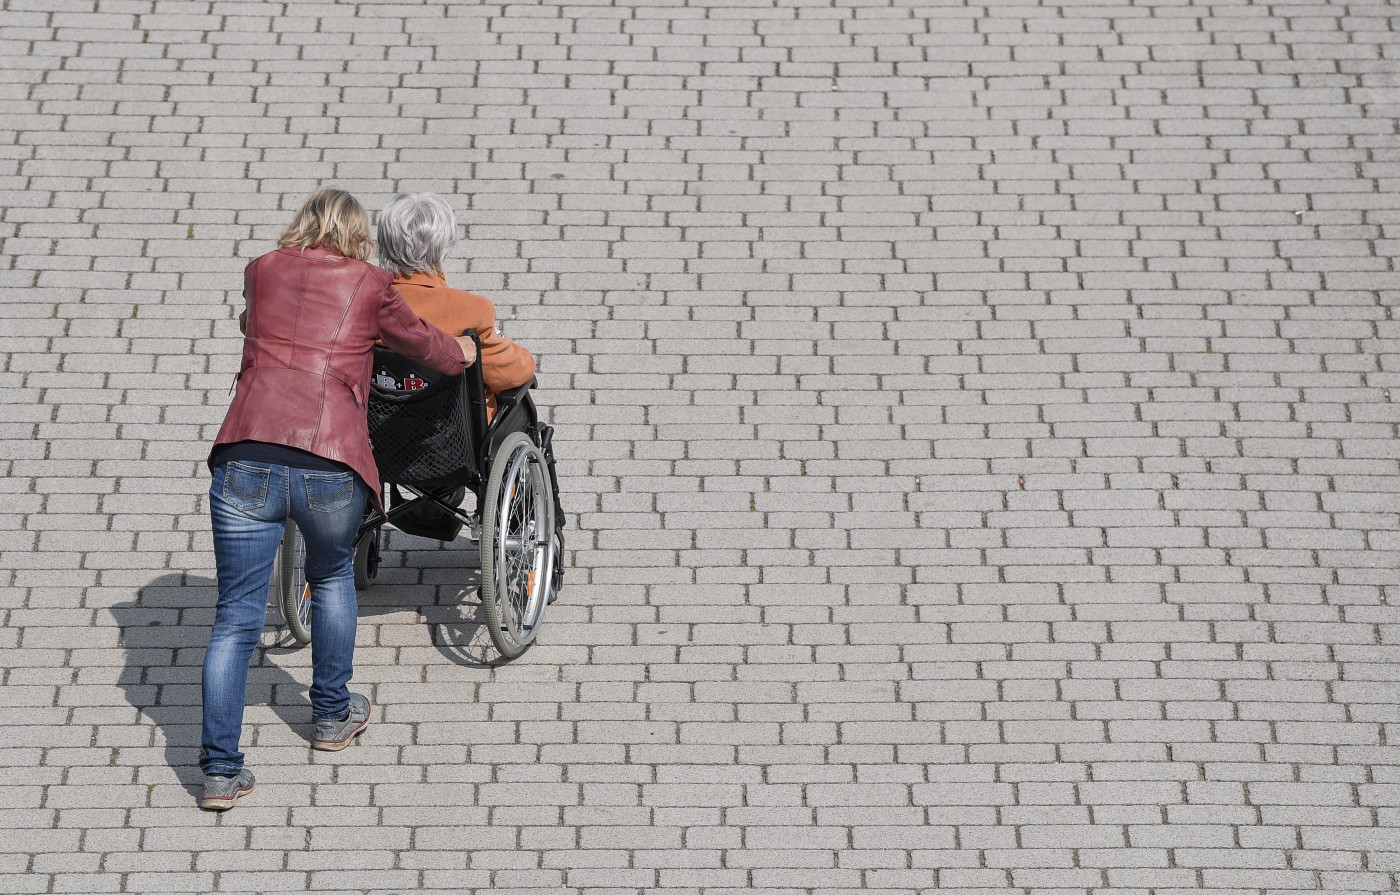 A woman pushes an elderly woman in a wheelchair across a sidewalk.